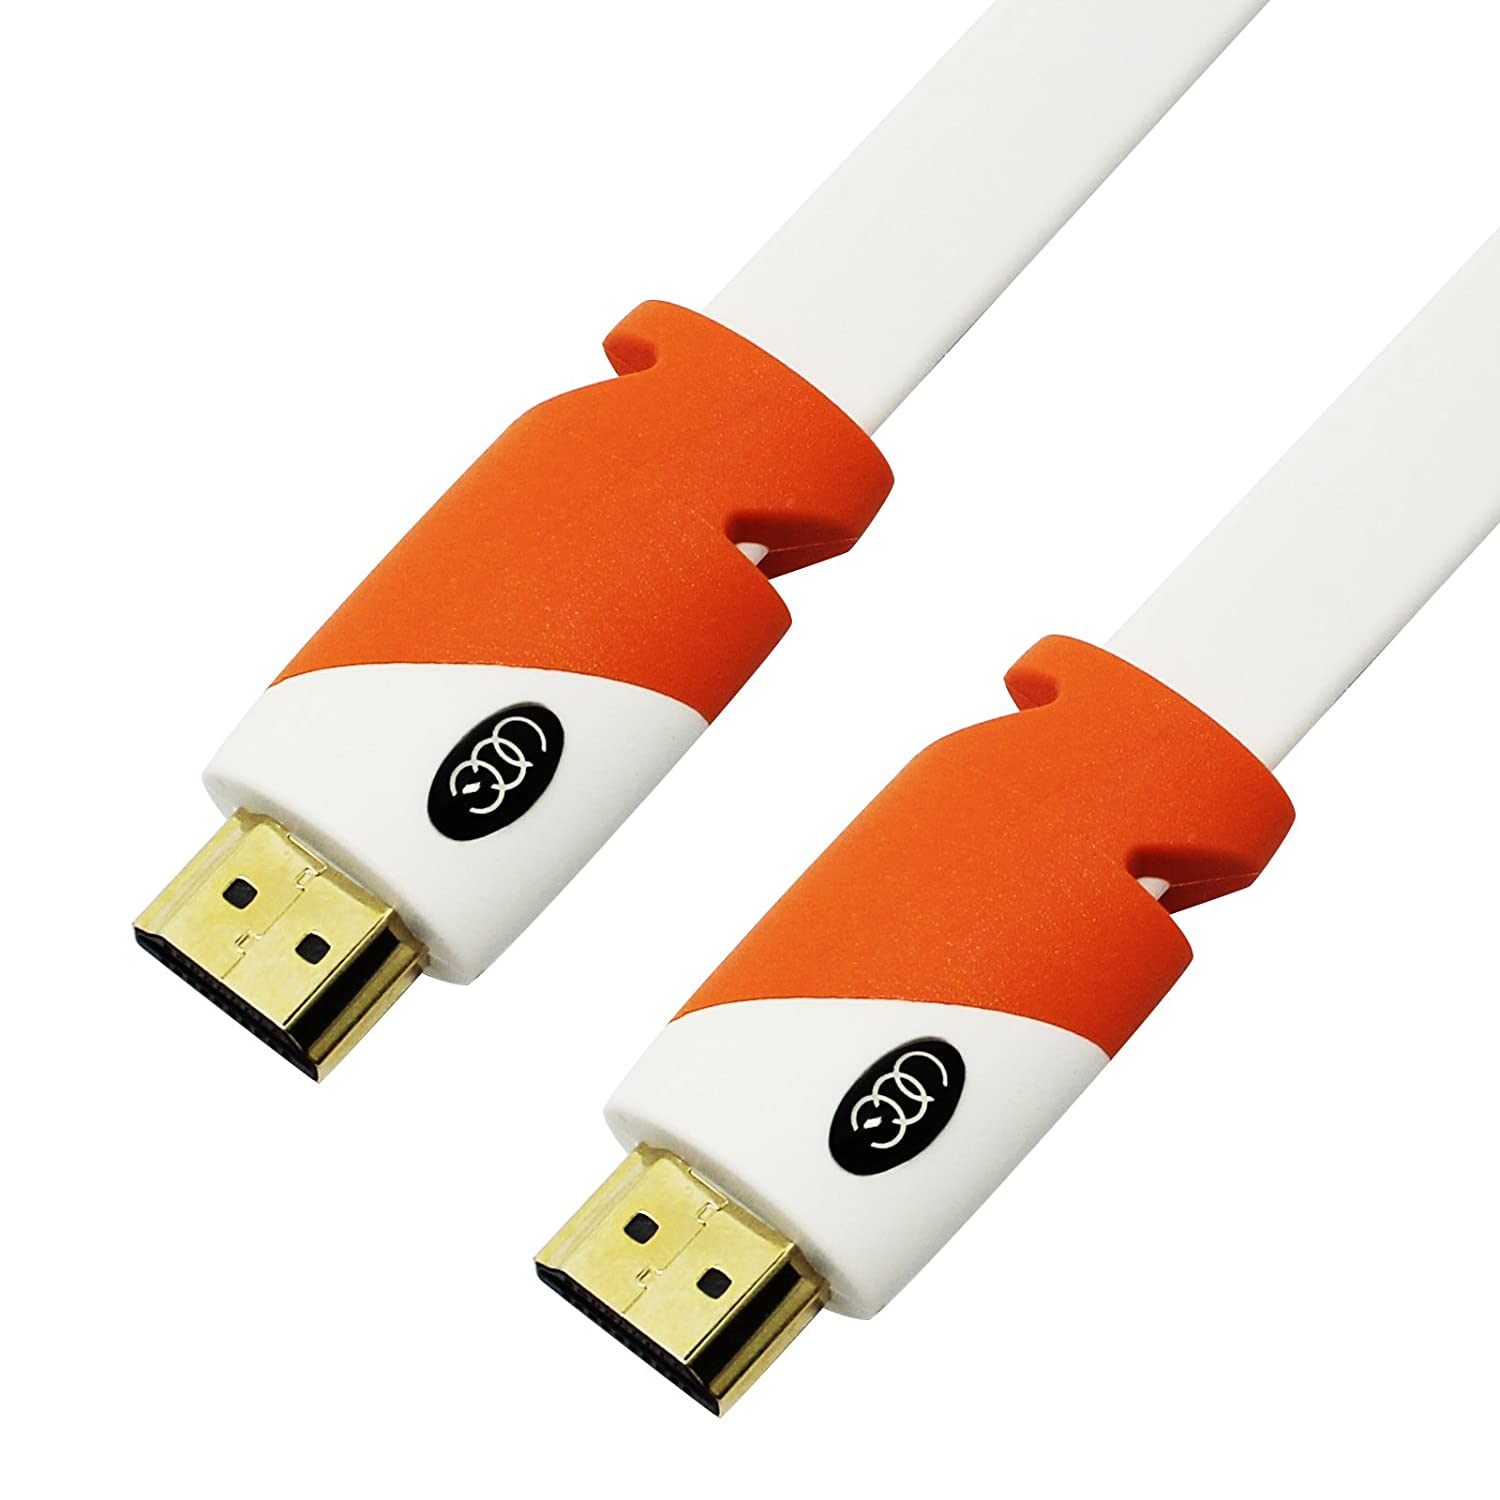 Amazon.com: FLAT HDMI Cable - 25 FT, High Speed HDMI Cable (7.6m ...